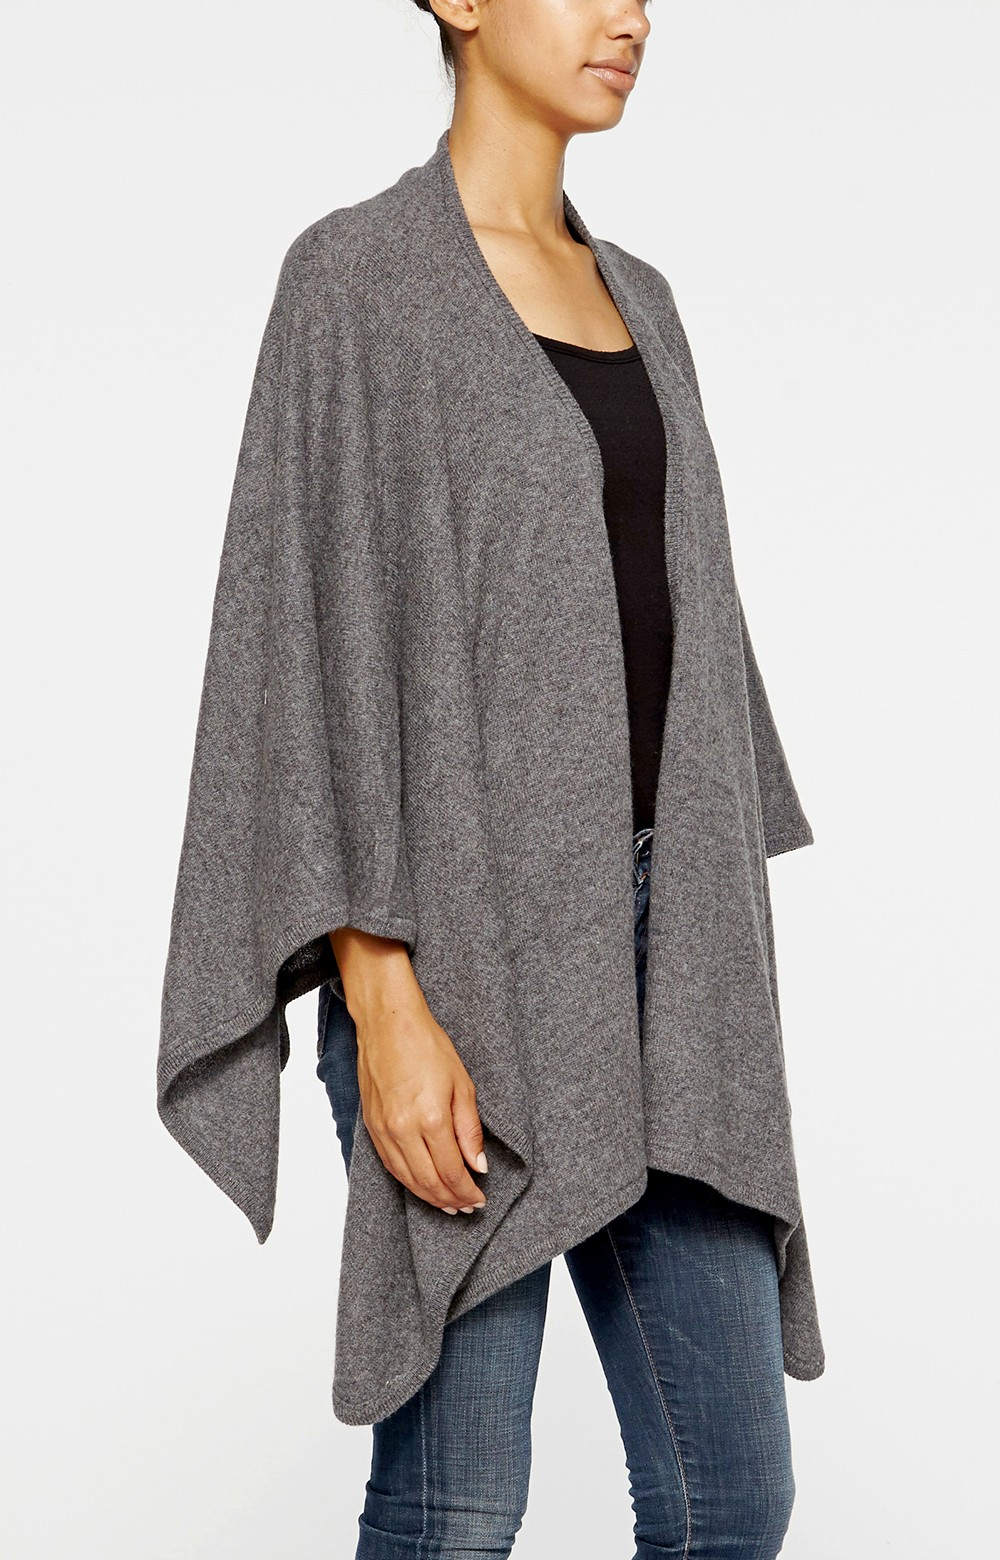 Nicole miller Cashmere Wrap in Gray   Lyst